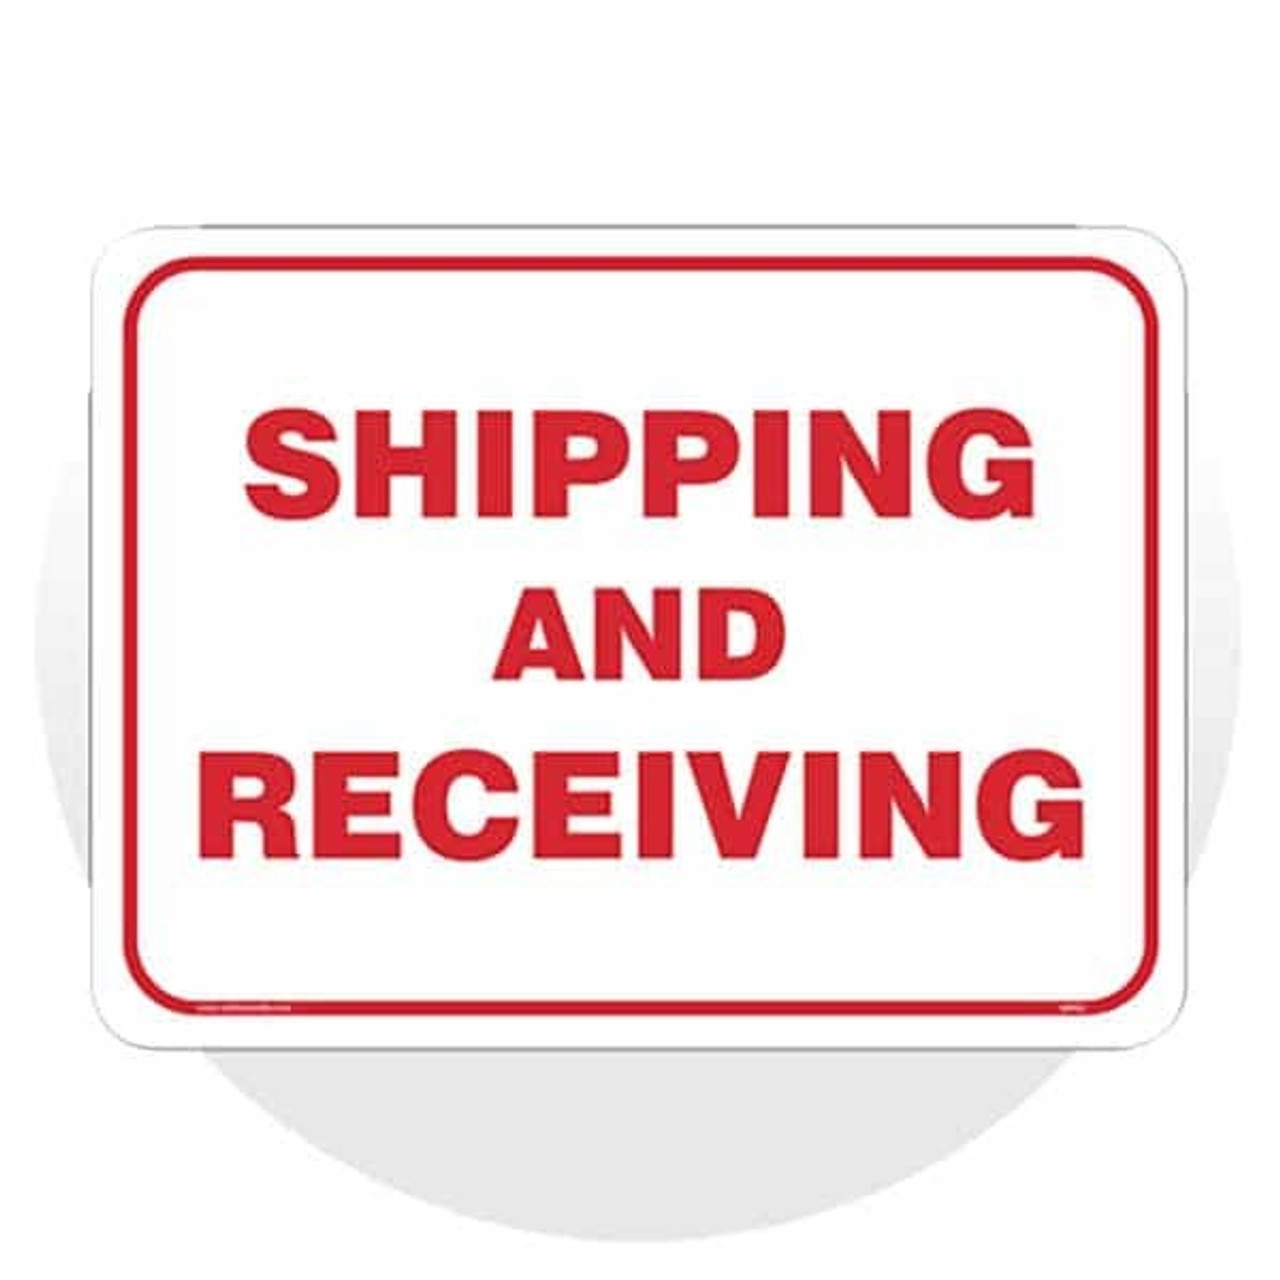 Shipping, Traffic & Parking Signs